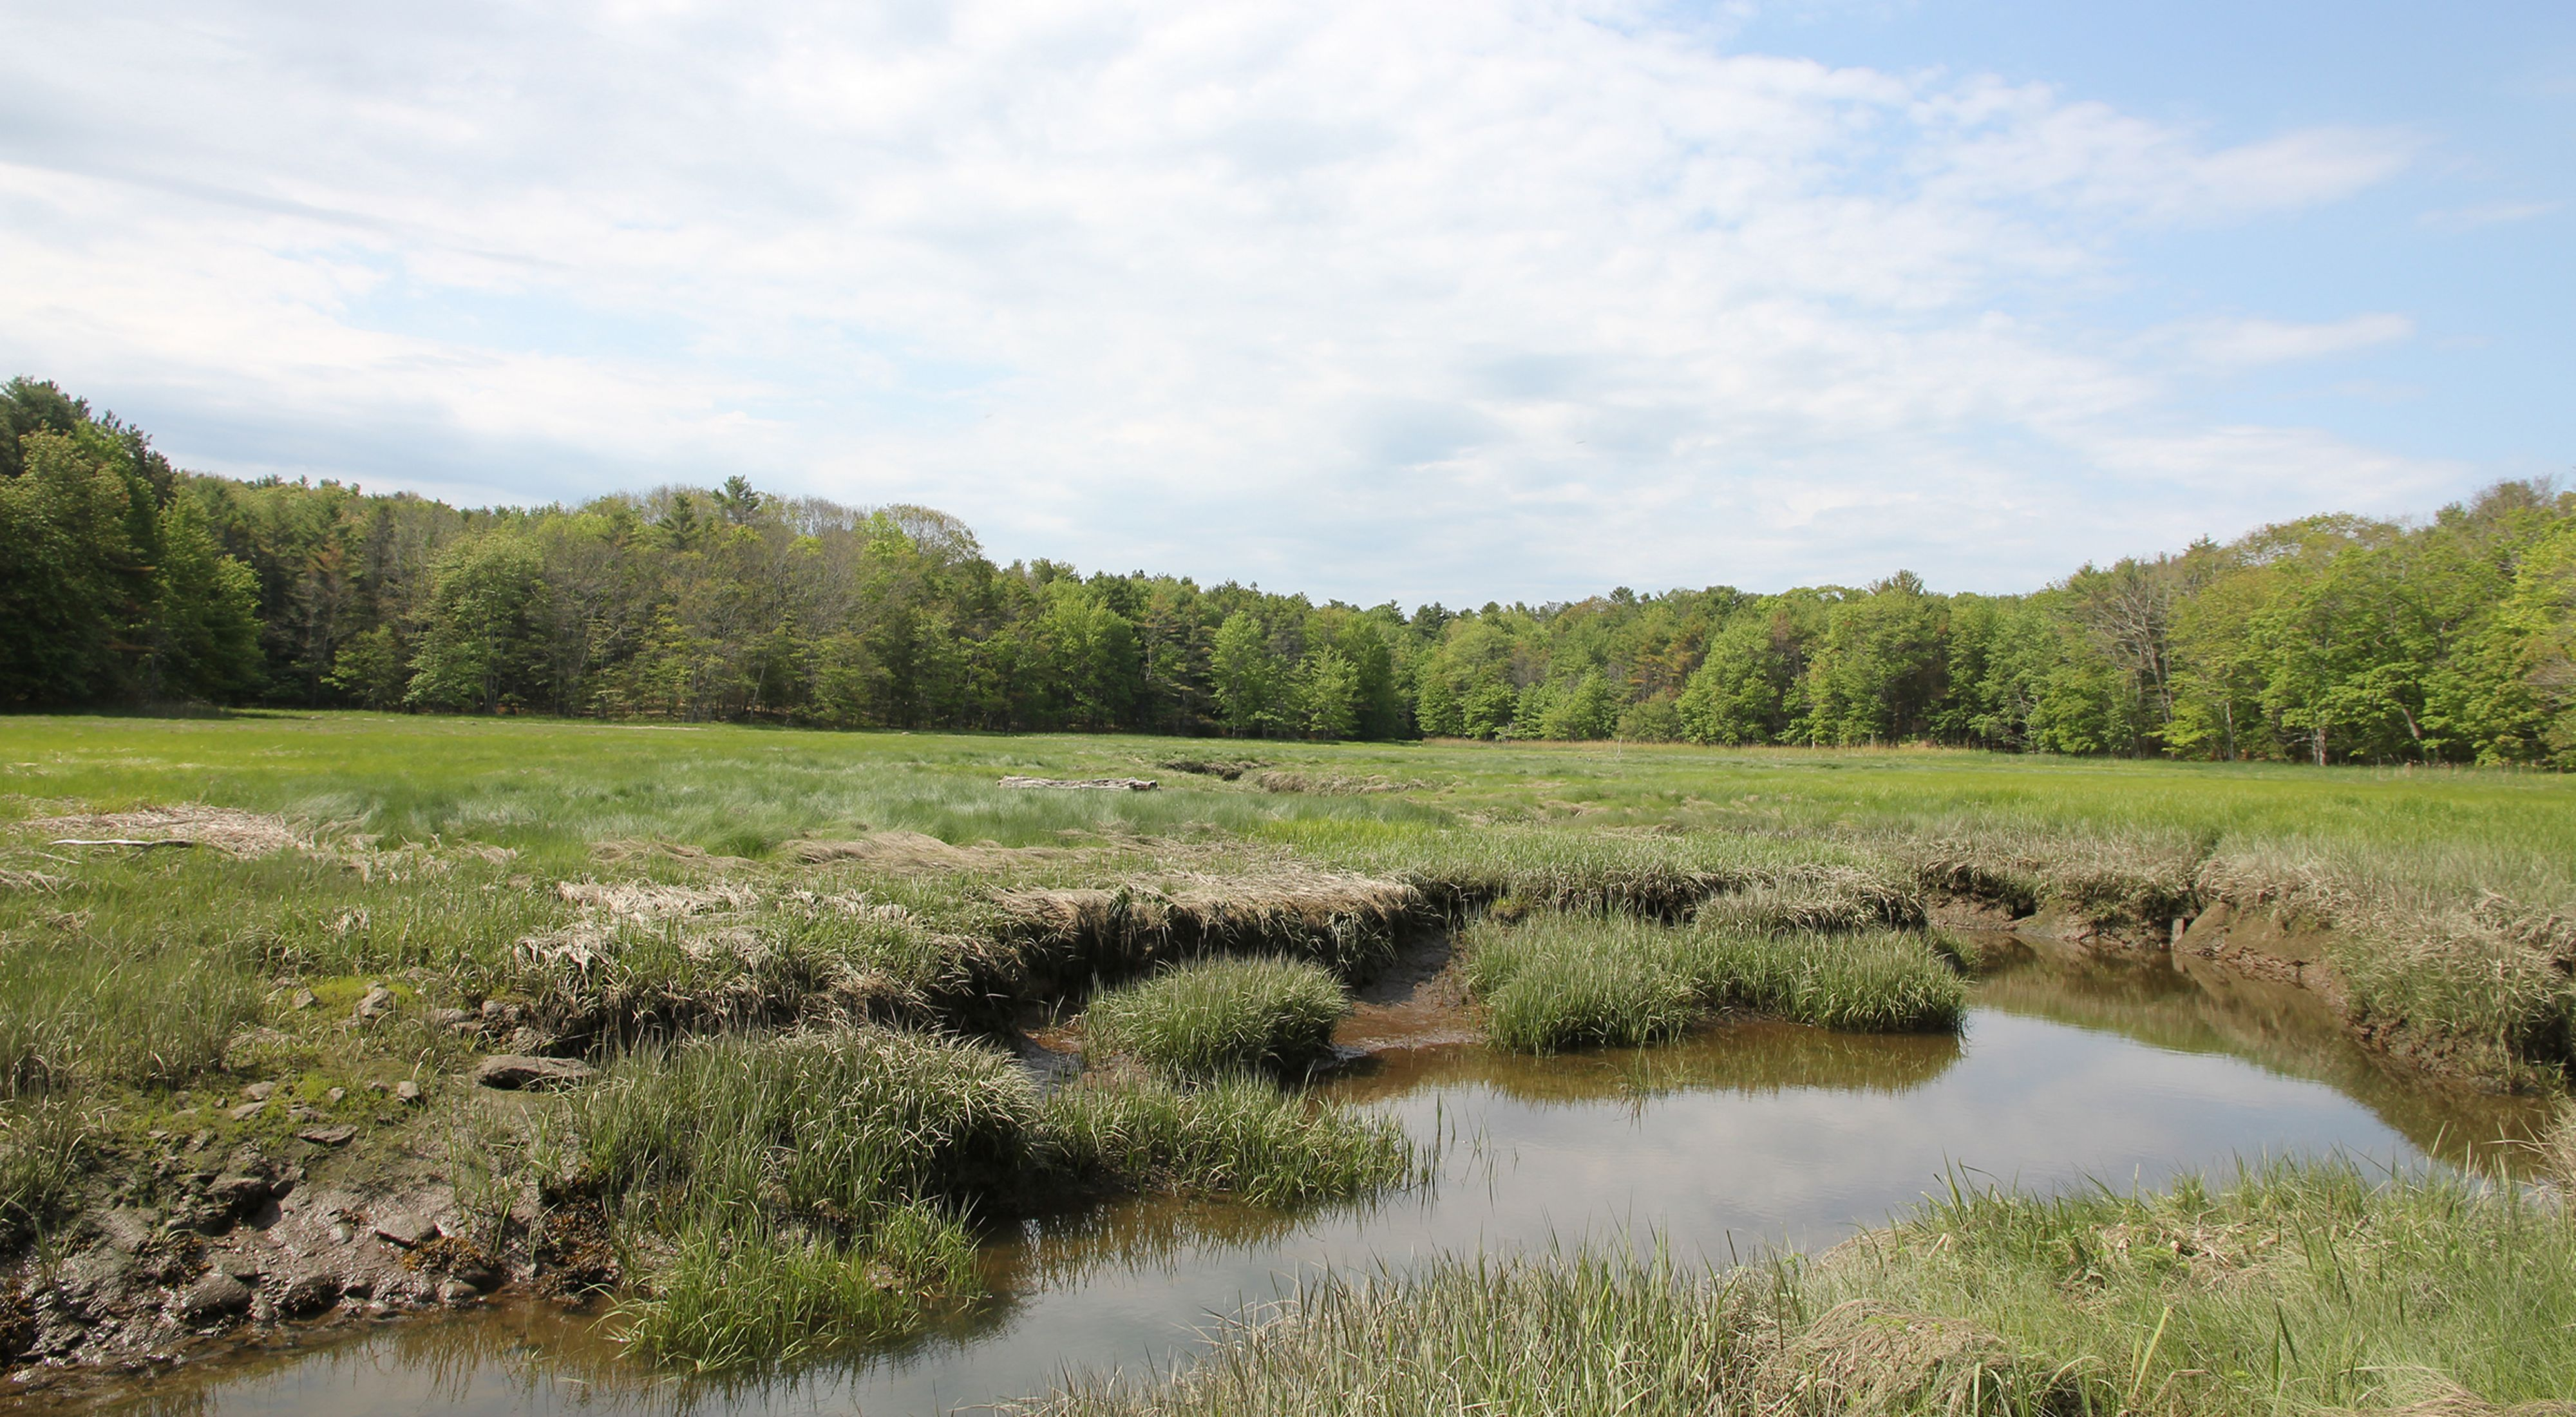 A salt marsh with clumped mud and grass and tidal ponds.